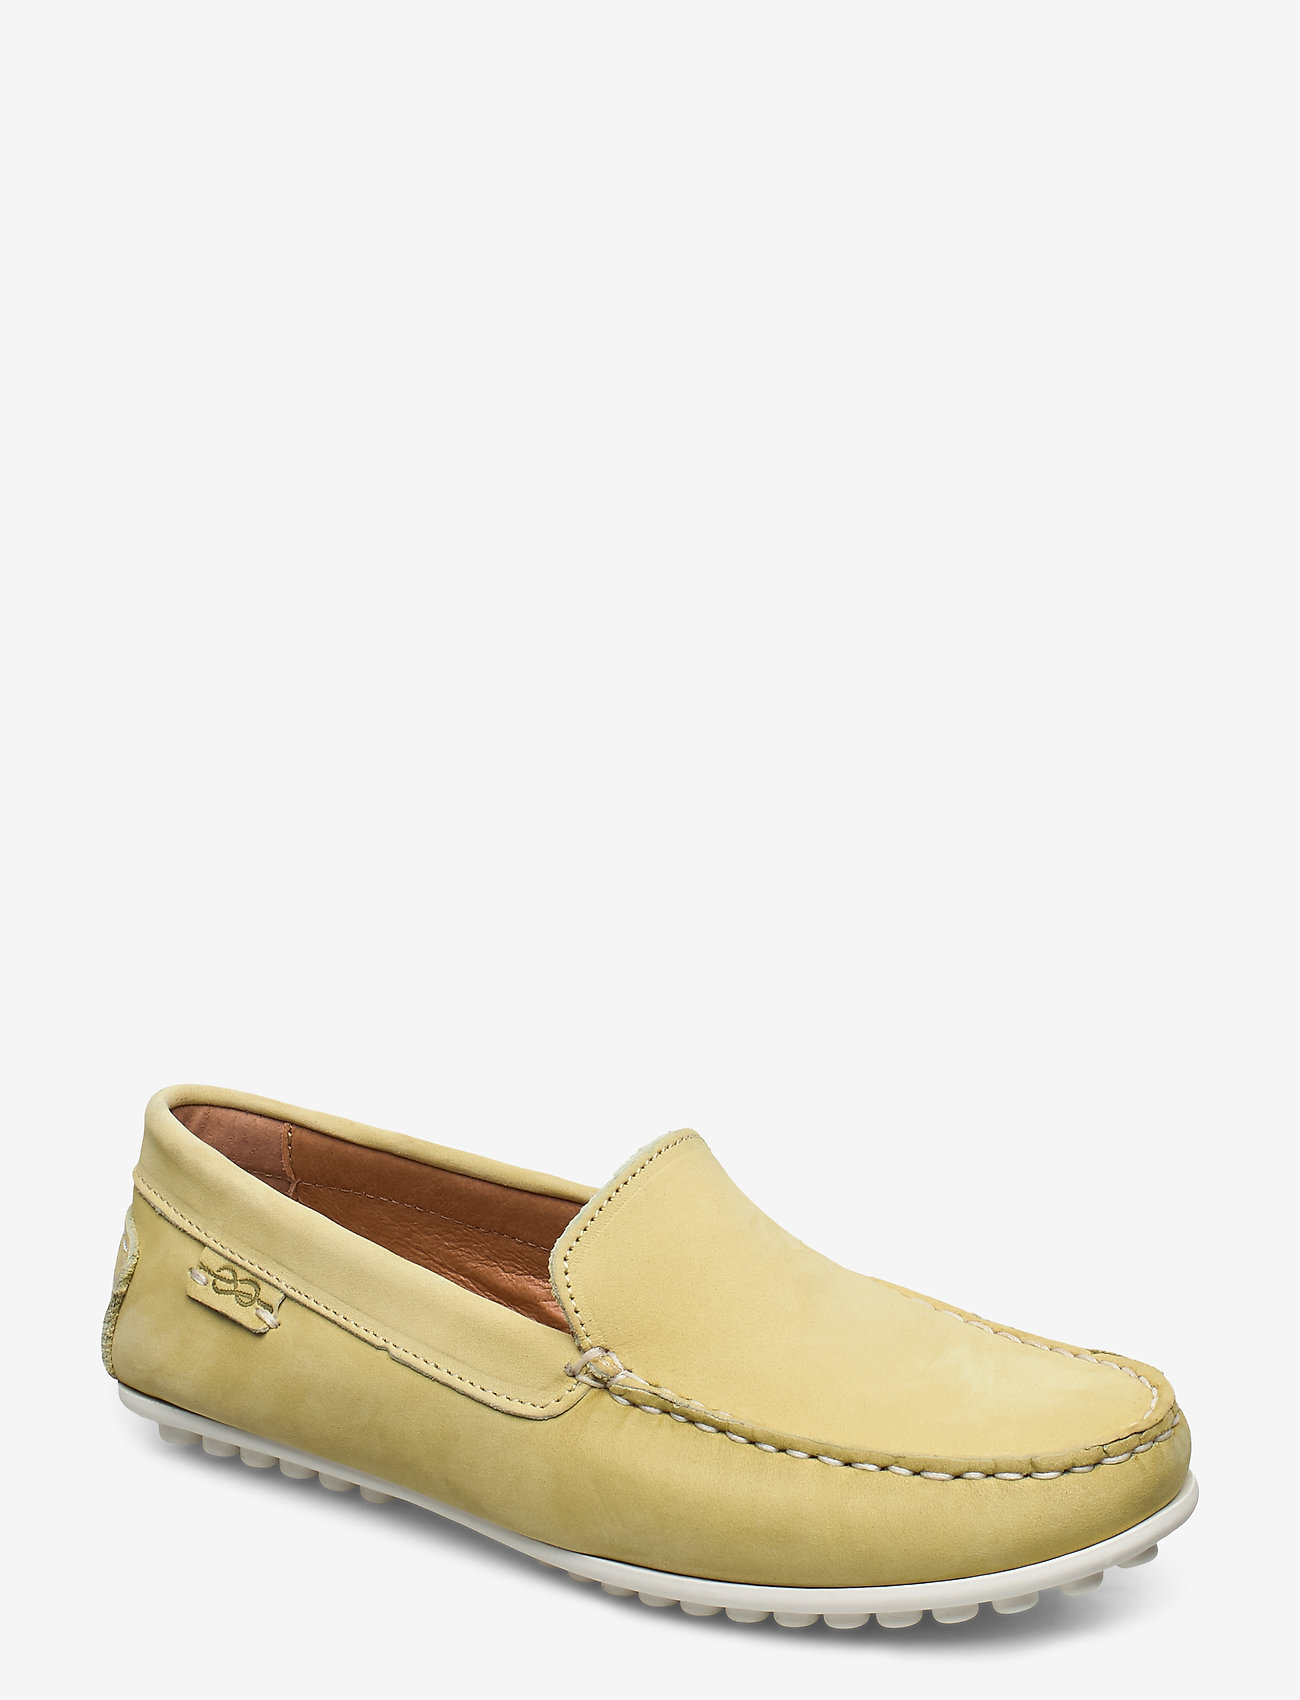 Marstrand - PLAIN DRIVING LOAFER WMN - mokasiner - yellow - 0